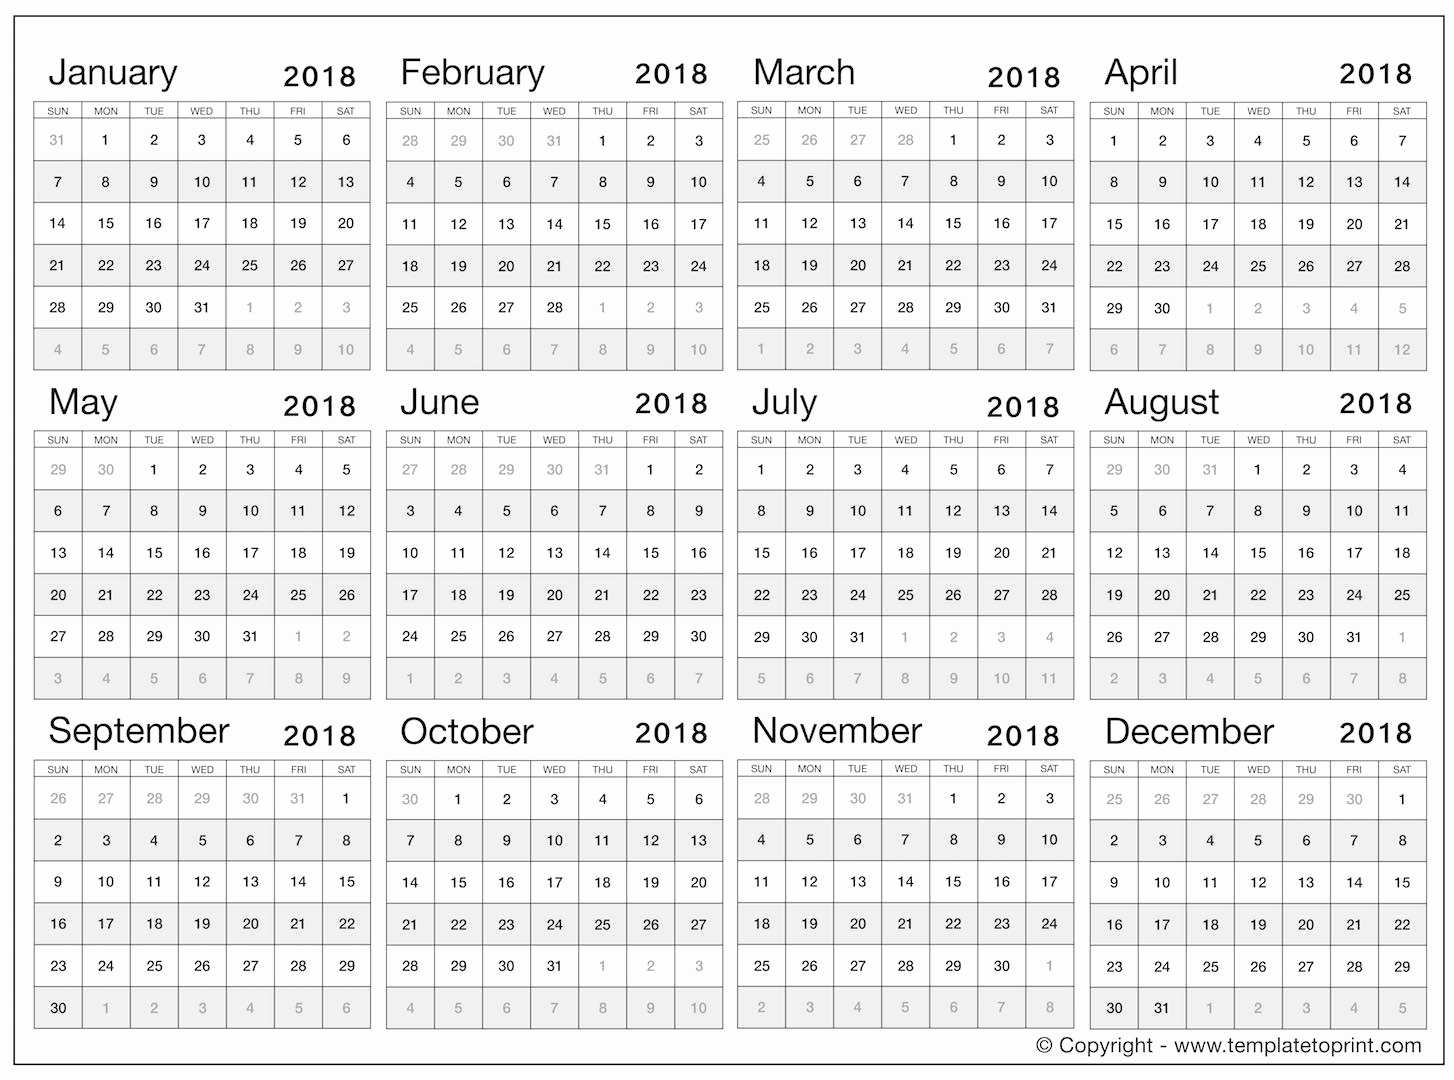 2019 Full Year Calendar Template Smartsheet With 2018 Yearly Excel Free Blank Templates